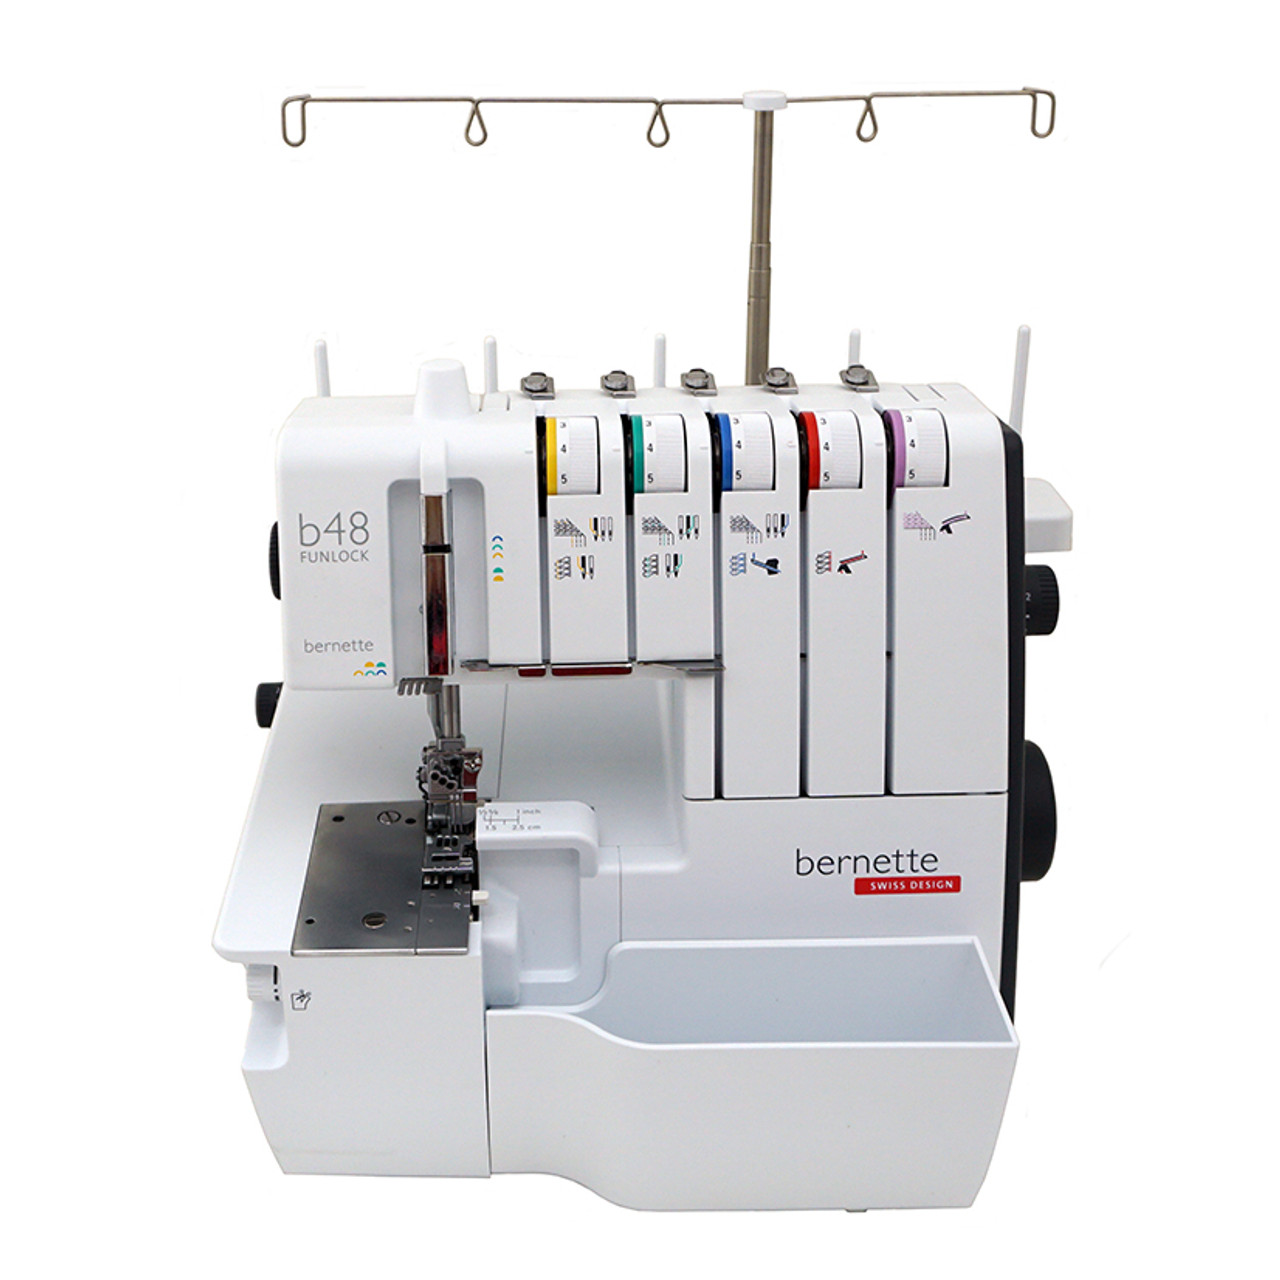 Bernette b48 Funlock Coverstitch Serger